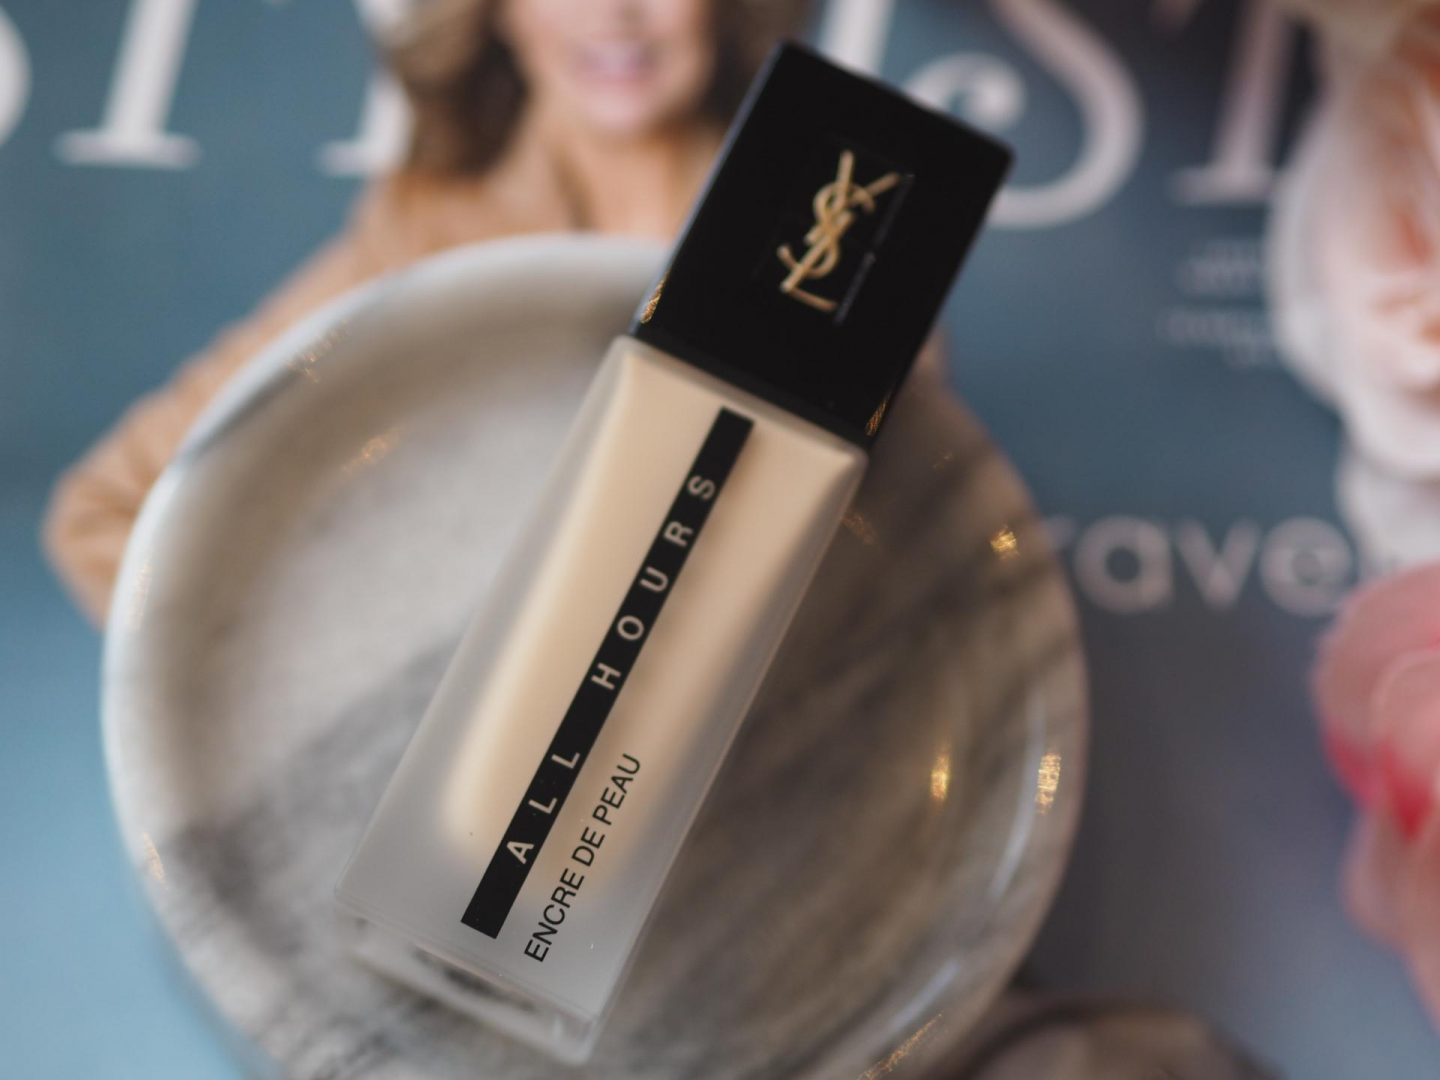 Catwalk Beauty Trends - Product: YSL All Hours Foundation (my shade - Warm Ivory)